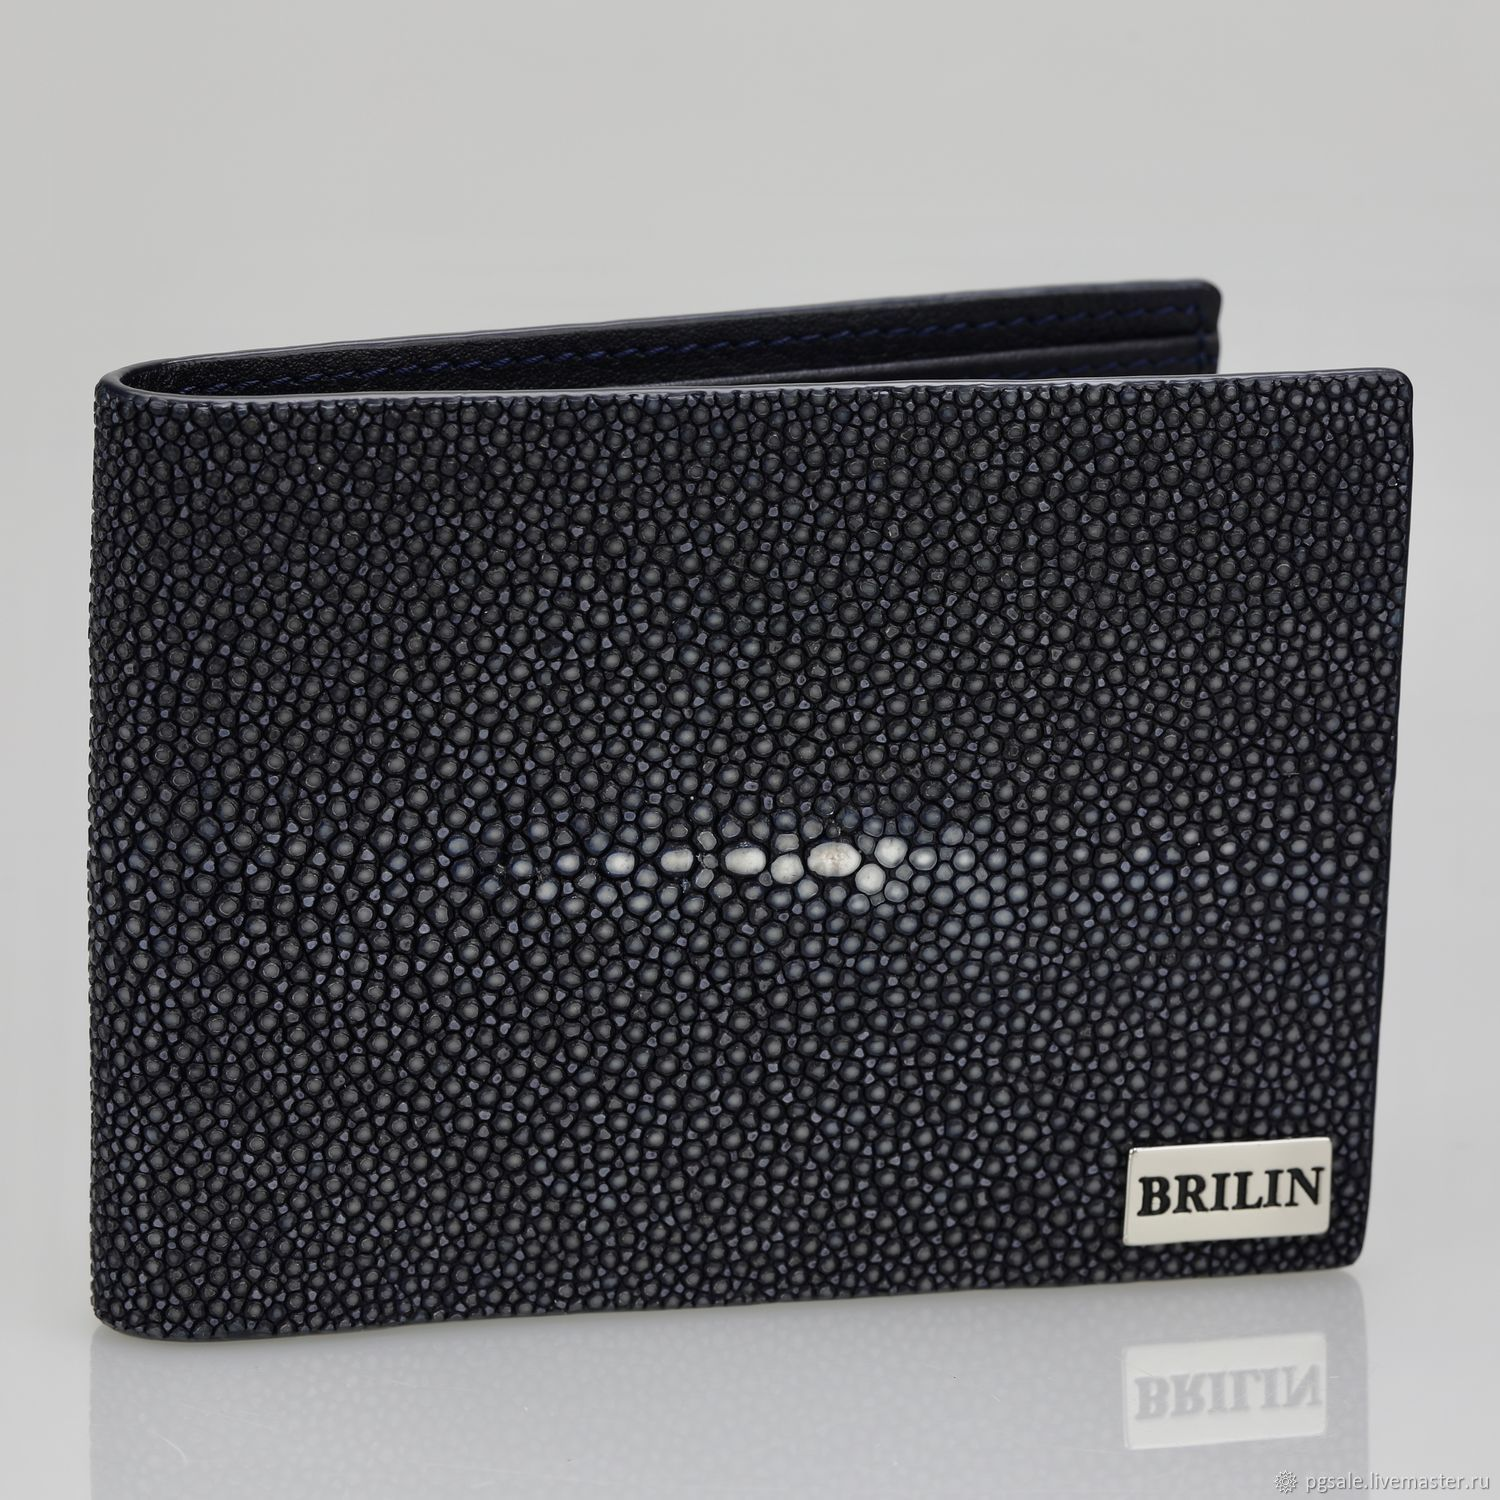 Purse made of polished Stingray premium, Wallets, St. Petersburg,  Фото №1